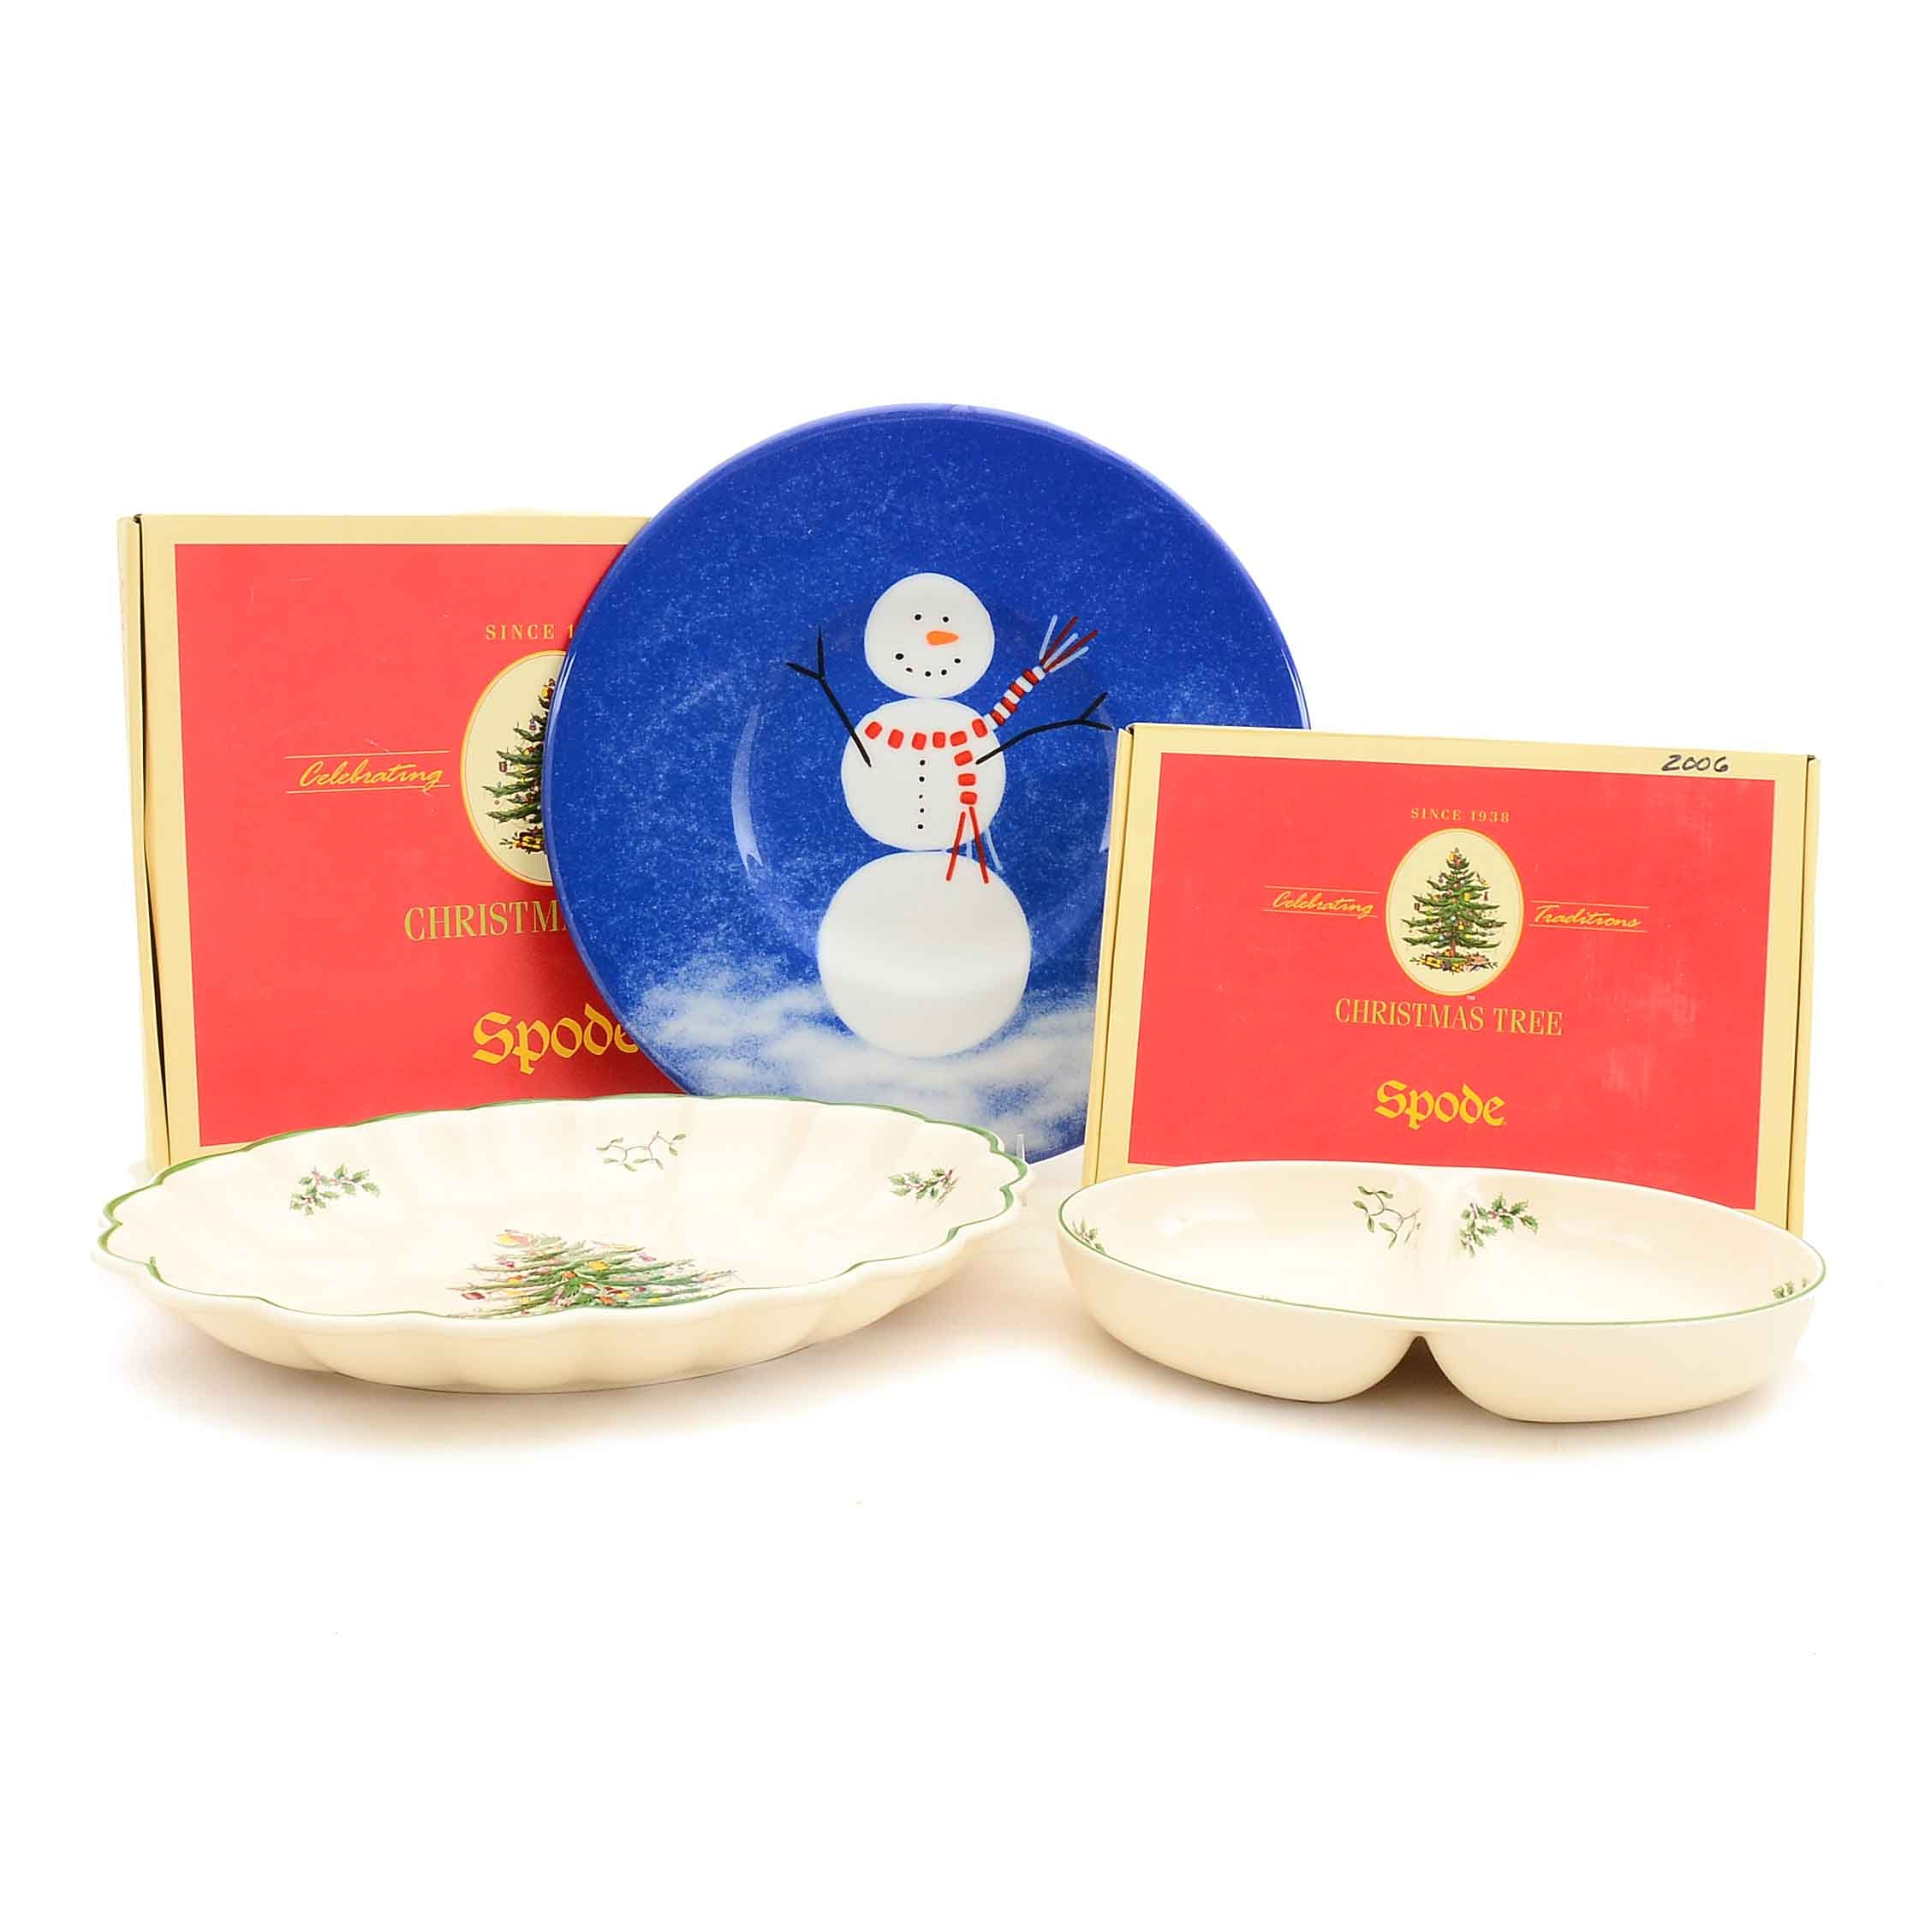 Group of Holiday Serveware including Spode